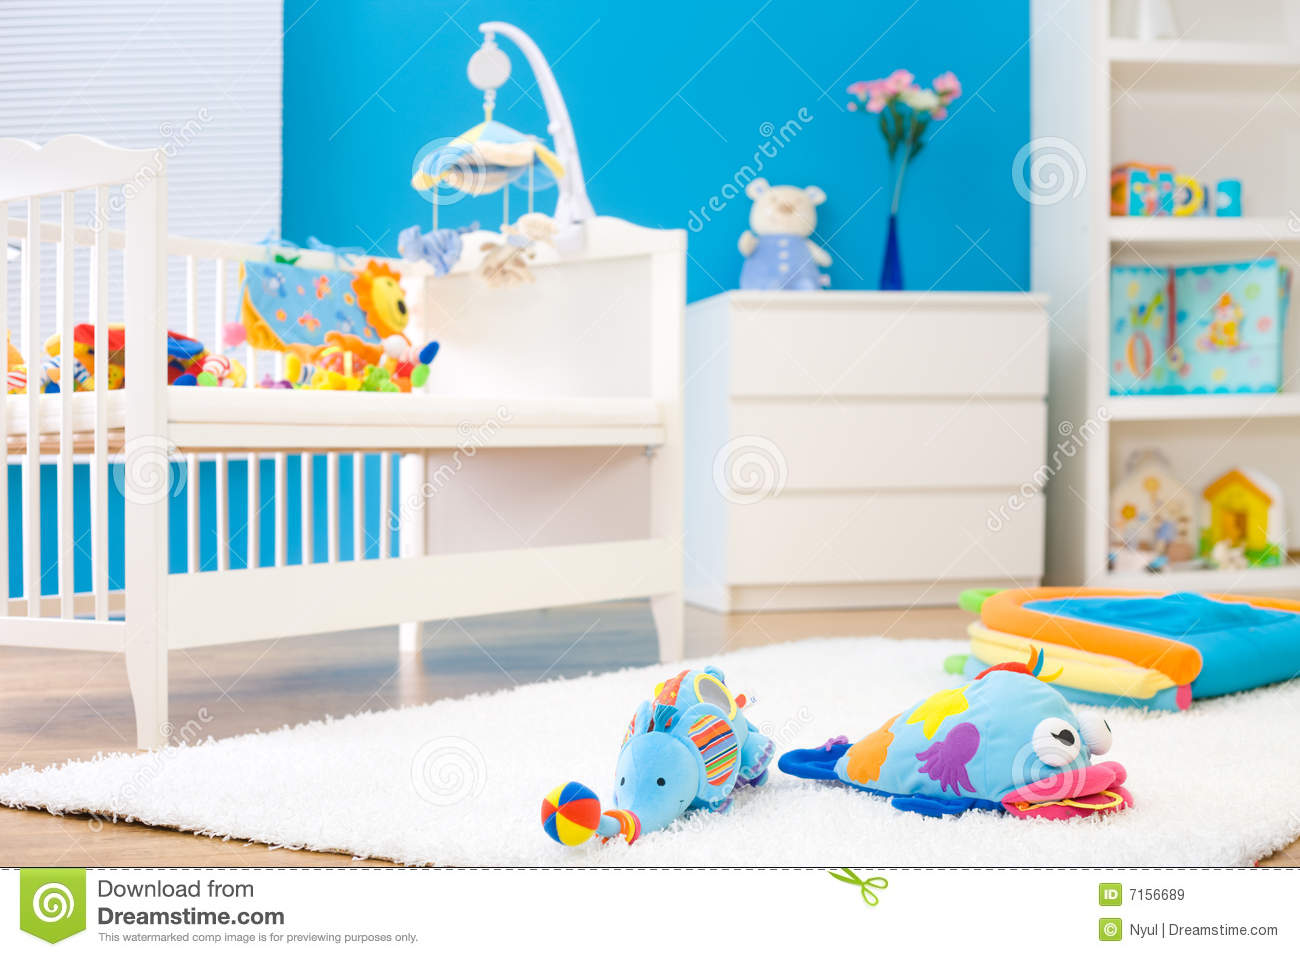 child's room stock images - image: 591254